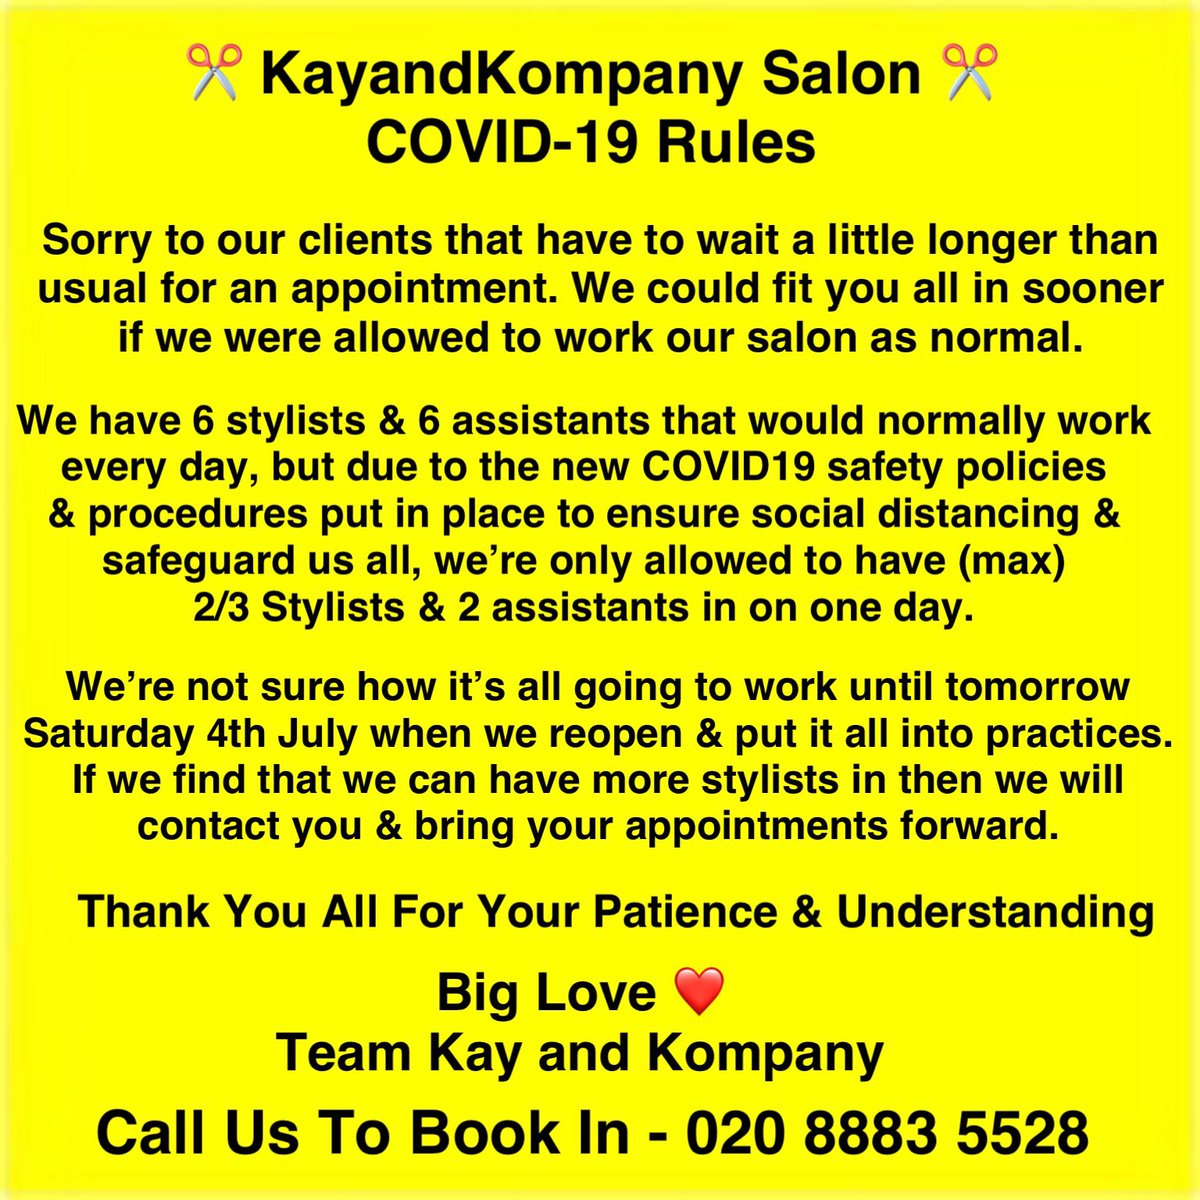 💓Oh How Much Have We Missed You All!  ✂️Just One More Sleep & We're Back On The Salon Floor Doing What We Love Best! #lovemyjob   Don't Delay Call Us To Book in 📞020 8883 5528 - Our Lovely Receptions 🙋♀️ Will Be Ready & Waiting To Personally Take Your Calls  #kayandkompany #hair